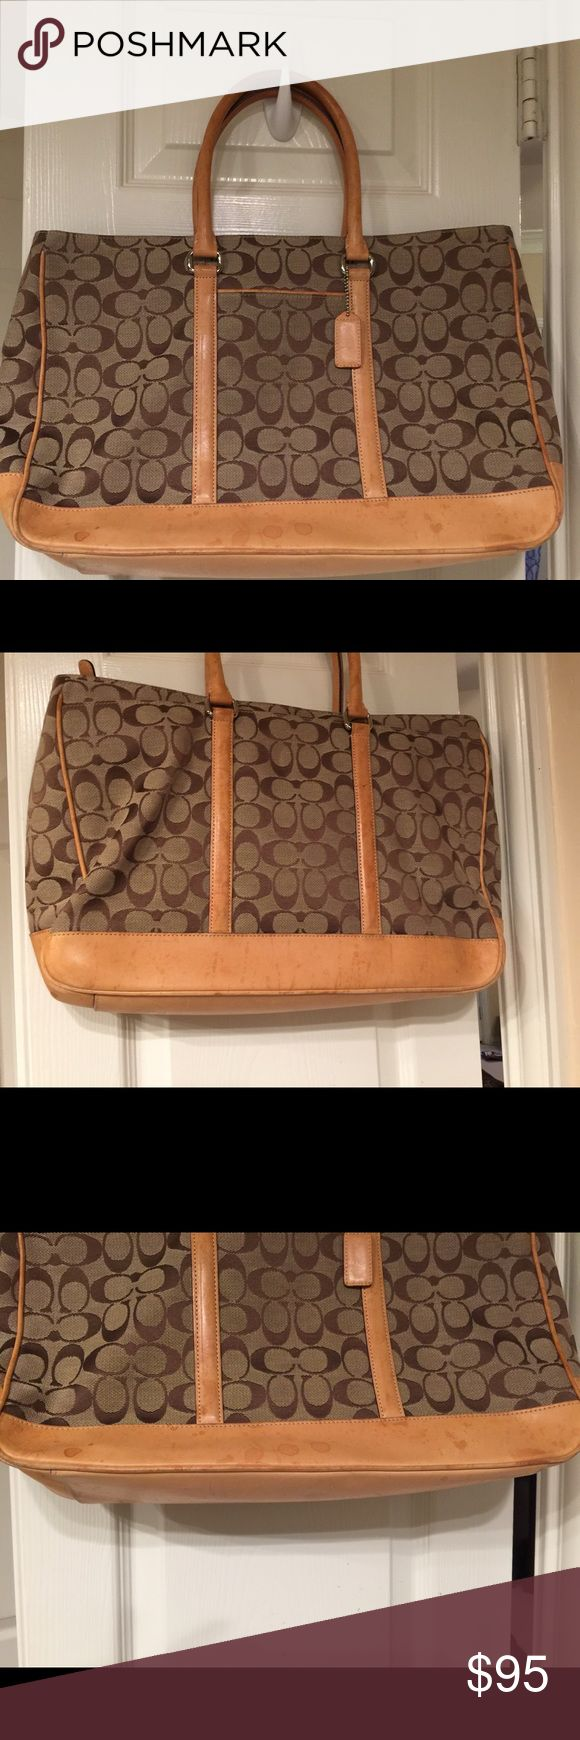 Signature collection Coach briefcase / laptop bag Coach briefcase. Has some water stains on leather. Leather will get darker with more use. Coach Bags Laptop Bags